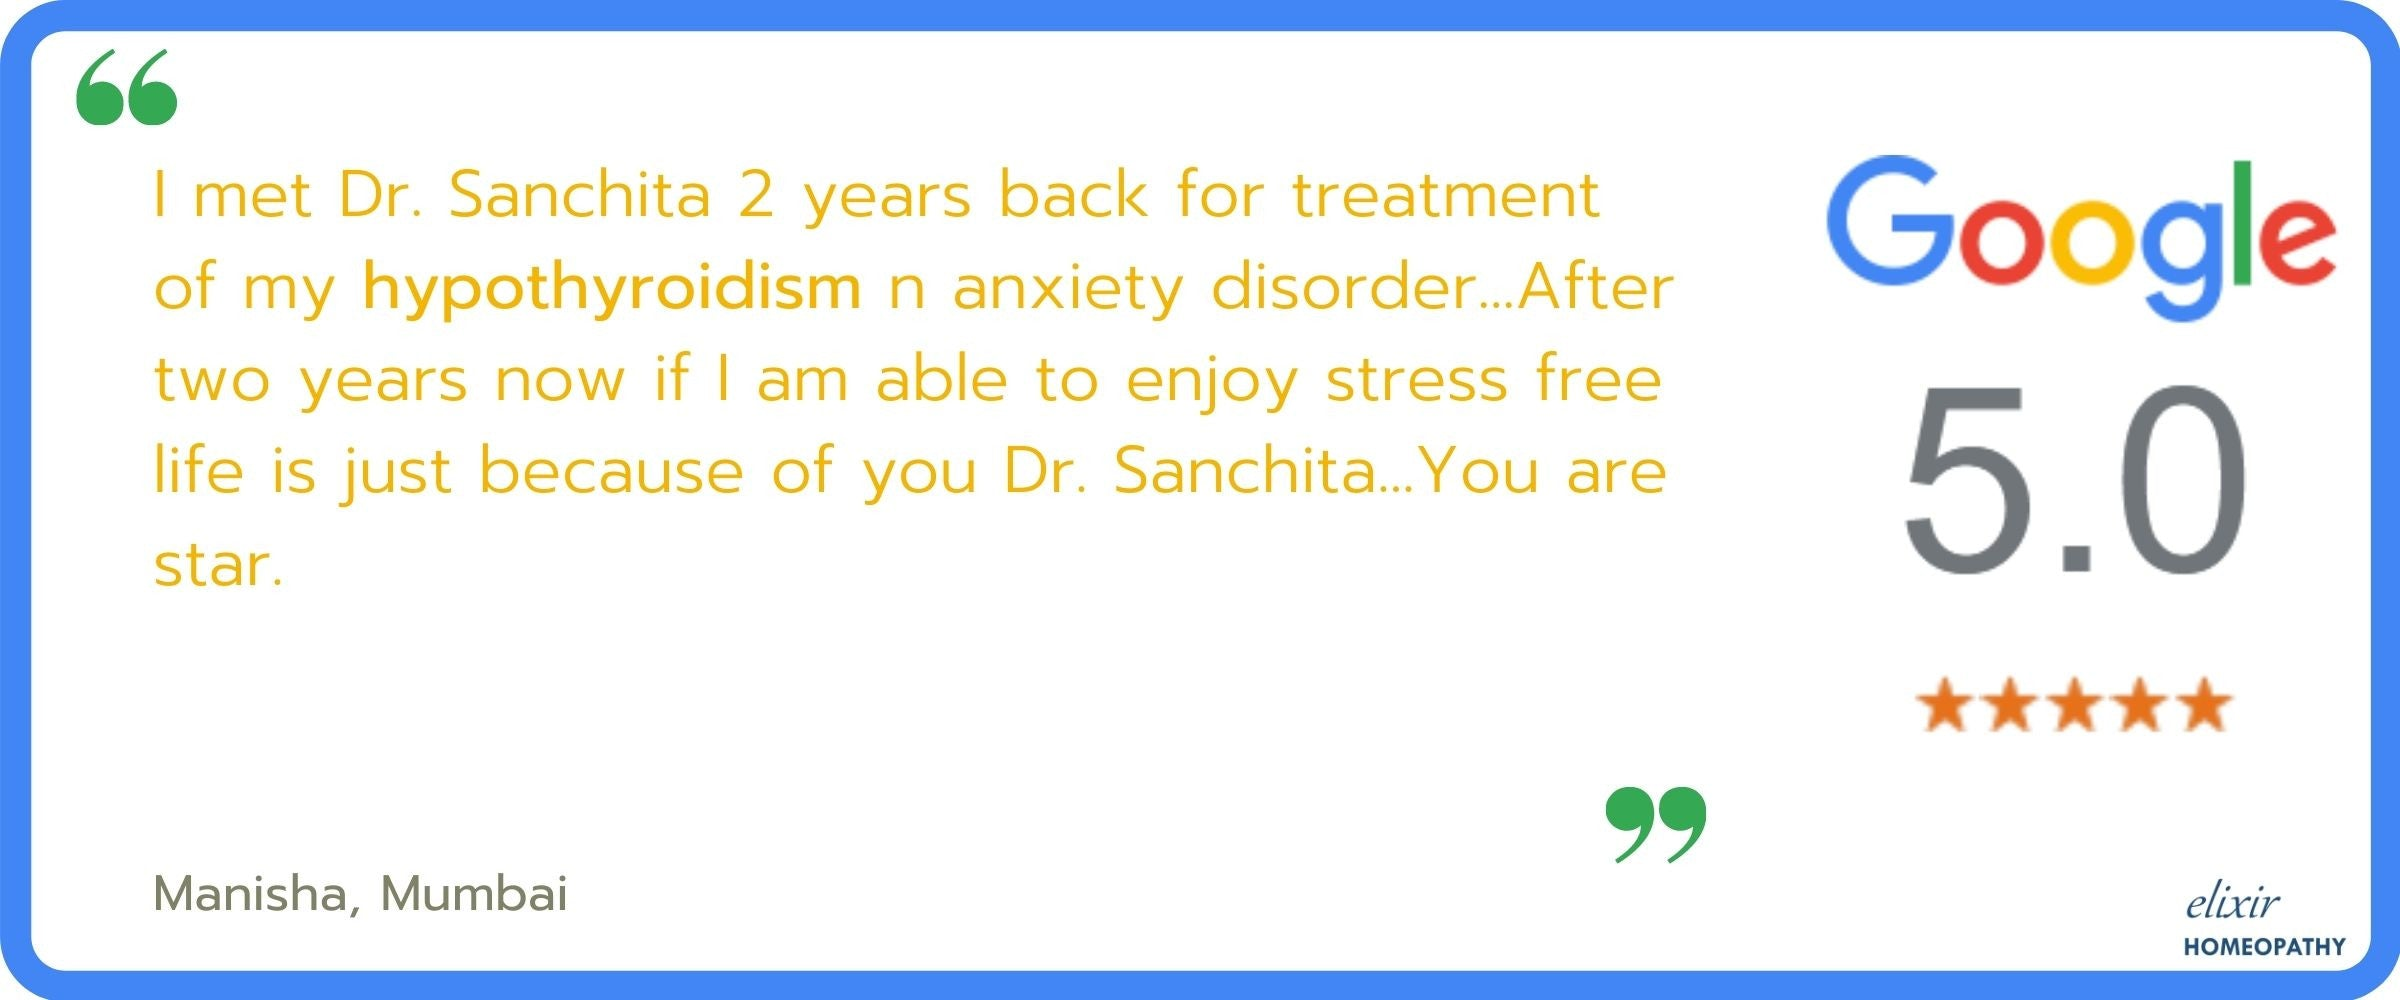 5-star ratings and reviews given by Manish (from Mumbai), to Dr. Sanchita Dharne of Elixir Homeopathy, for successful homeopathic treatment of her hypothyroidism.